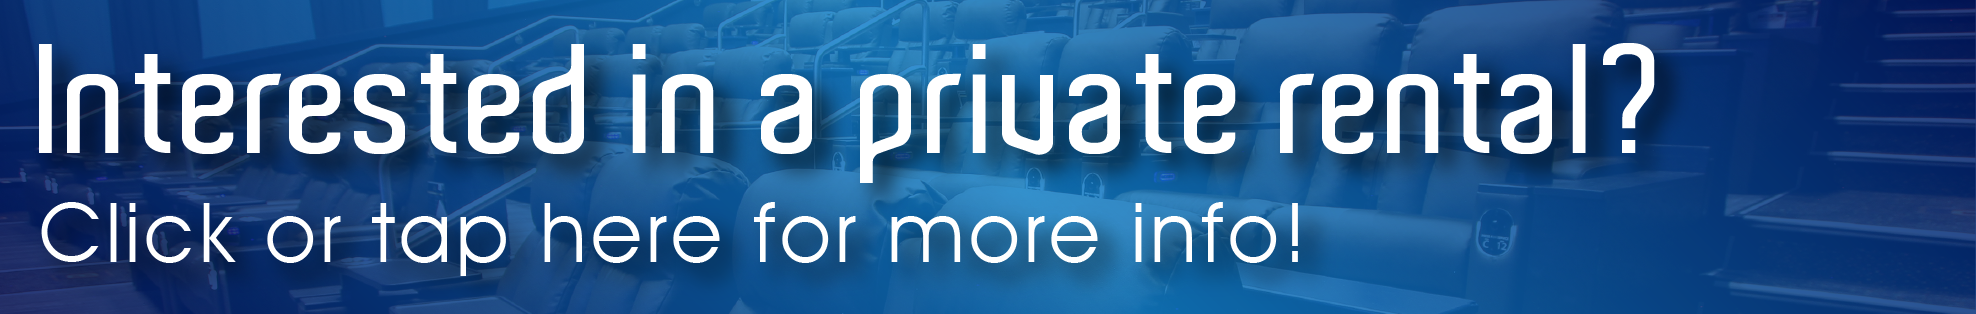 Banner image for private rental information - click here to learn more